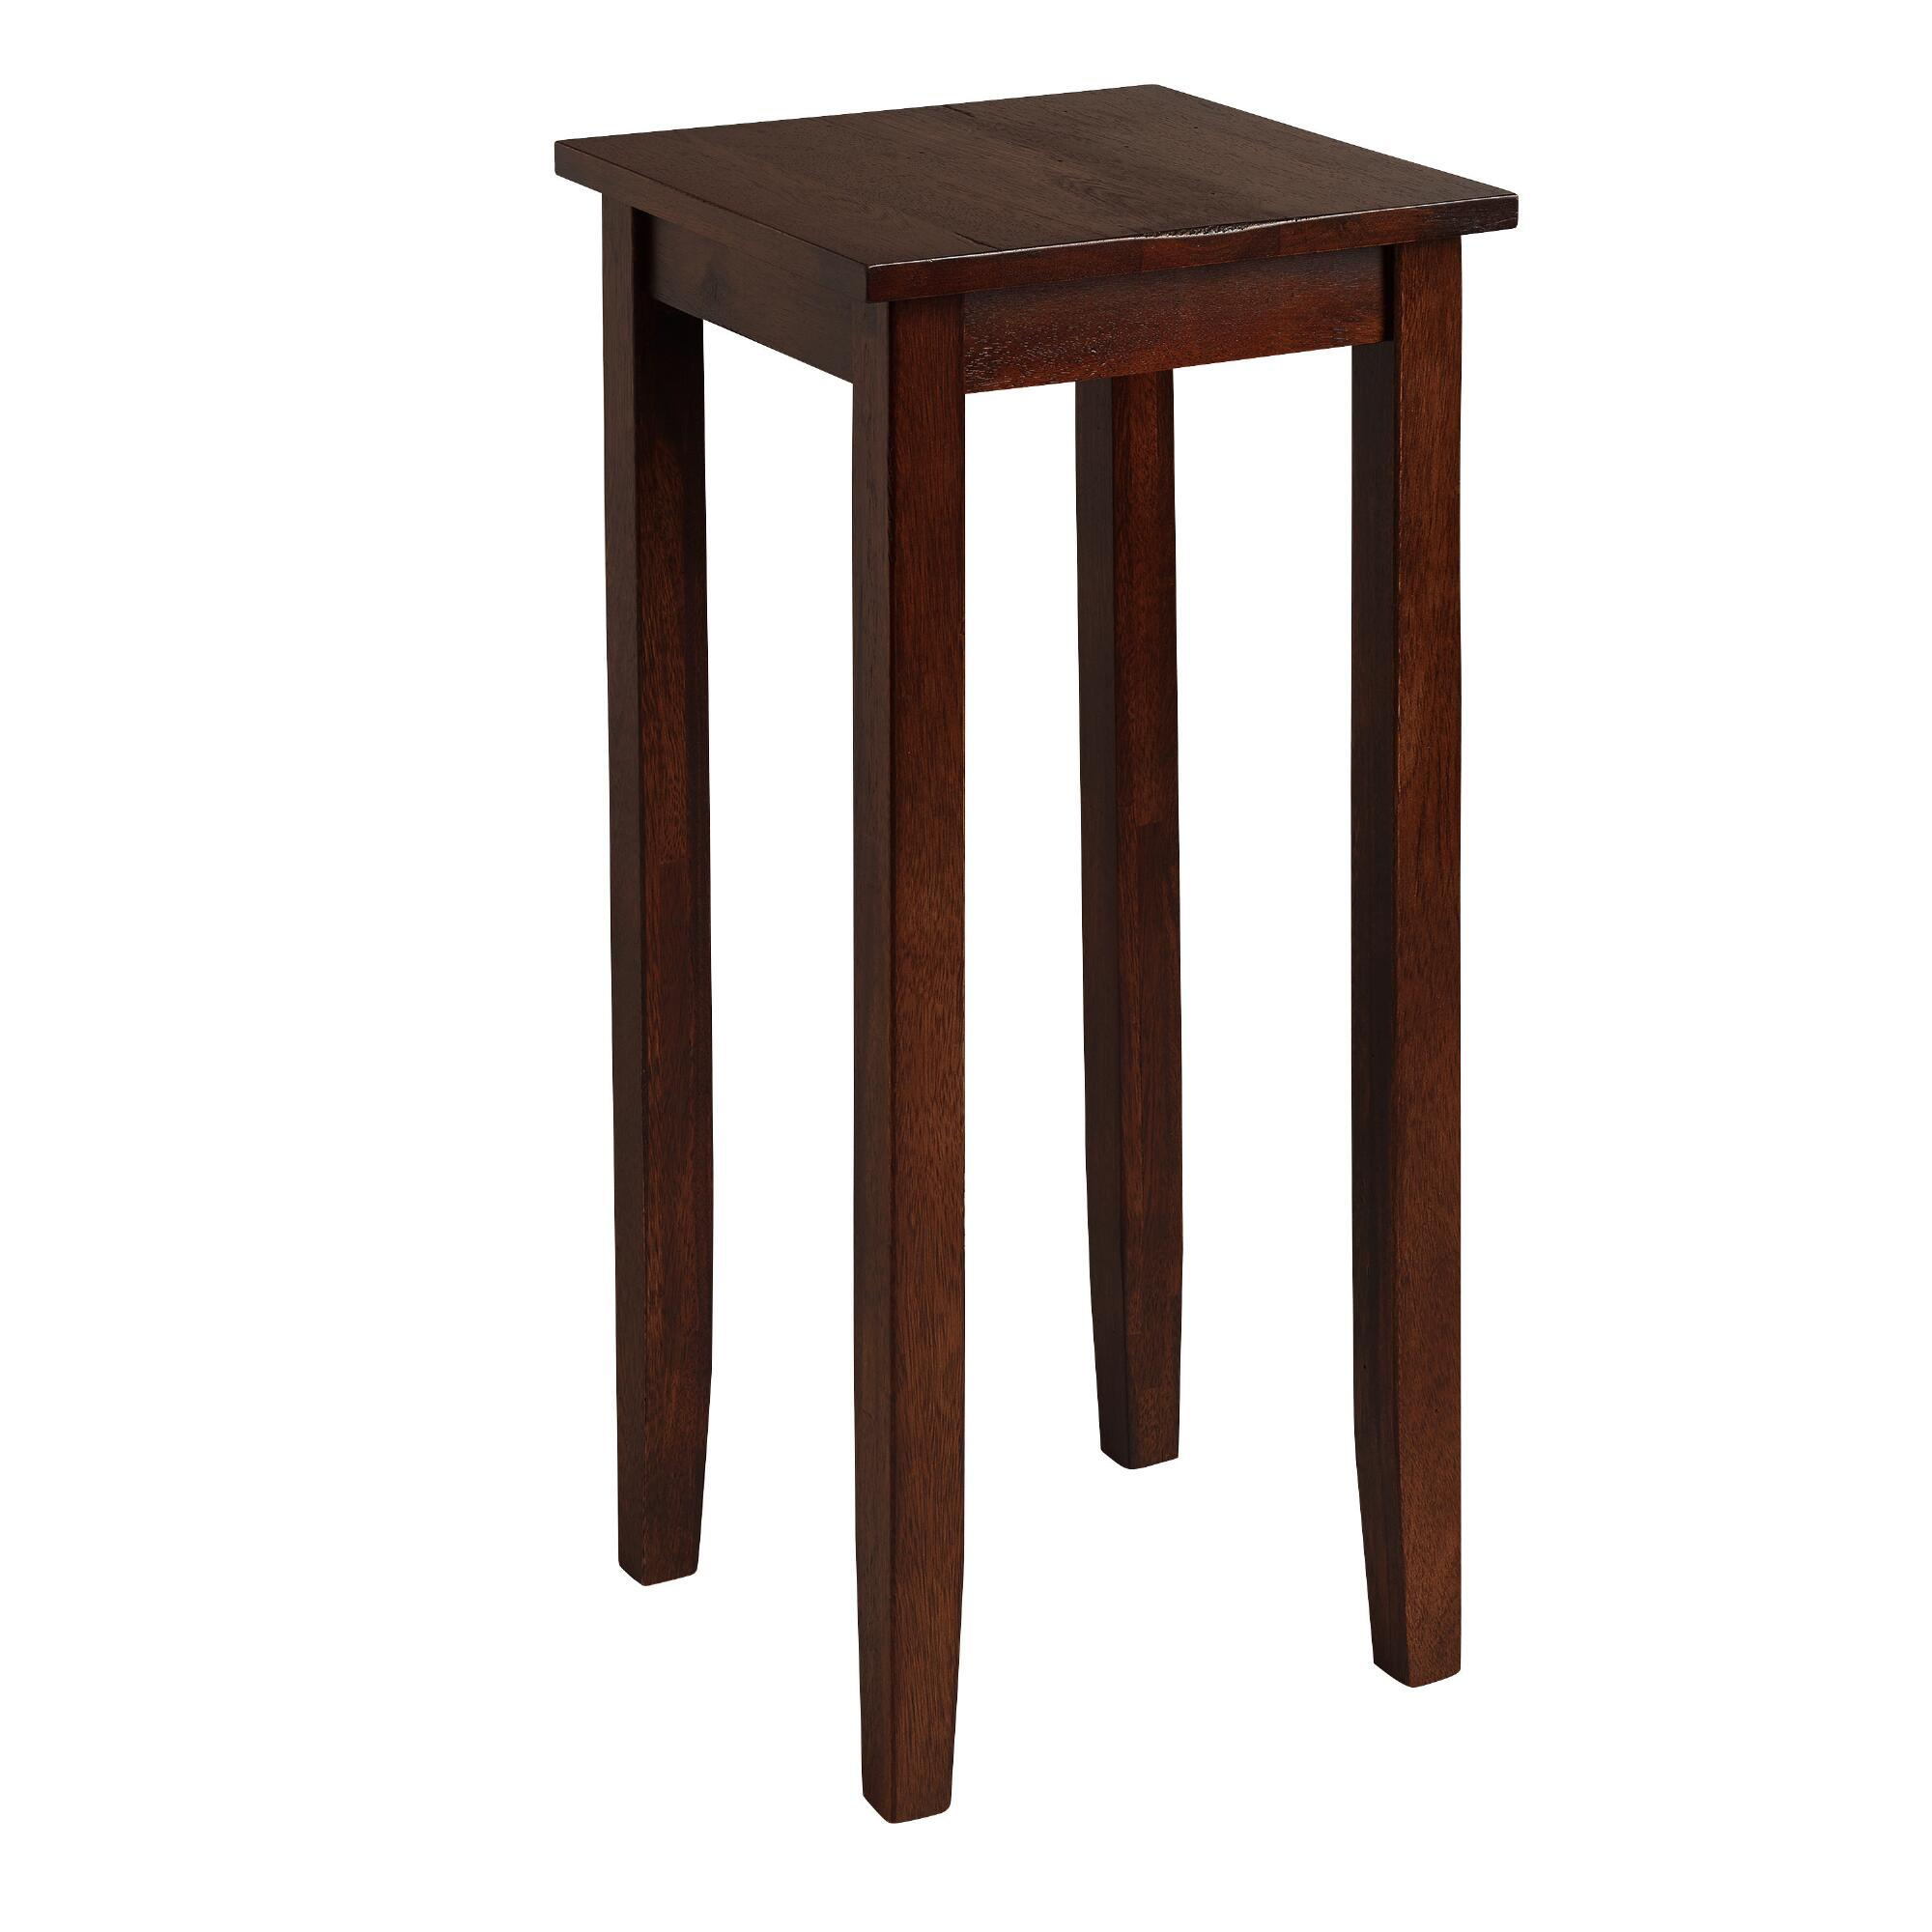 Tall chloe accent table world market for Small tall end table